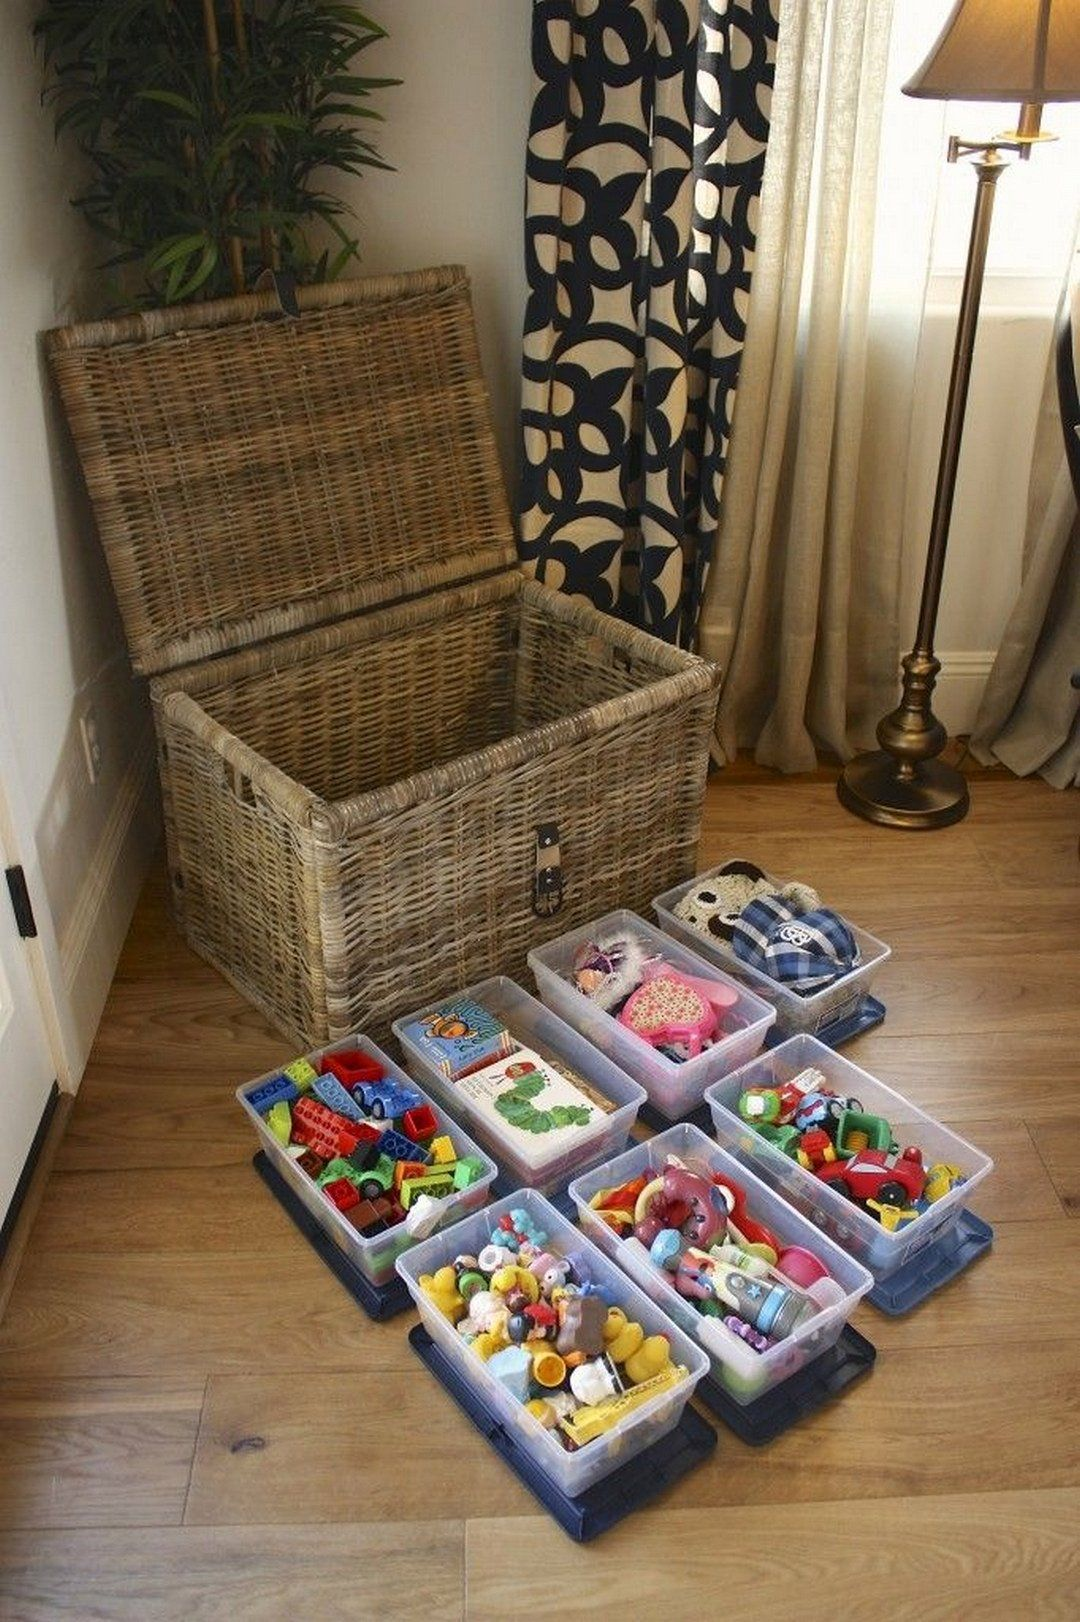 New Toy Storage Ideas Living Room Minimalist